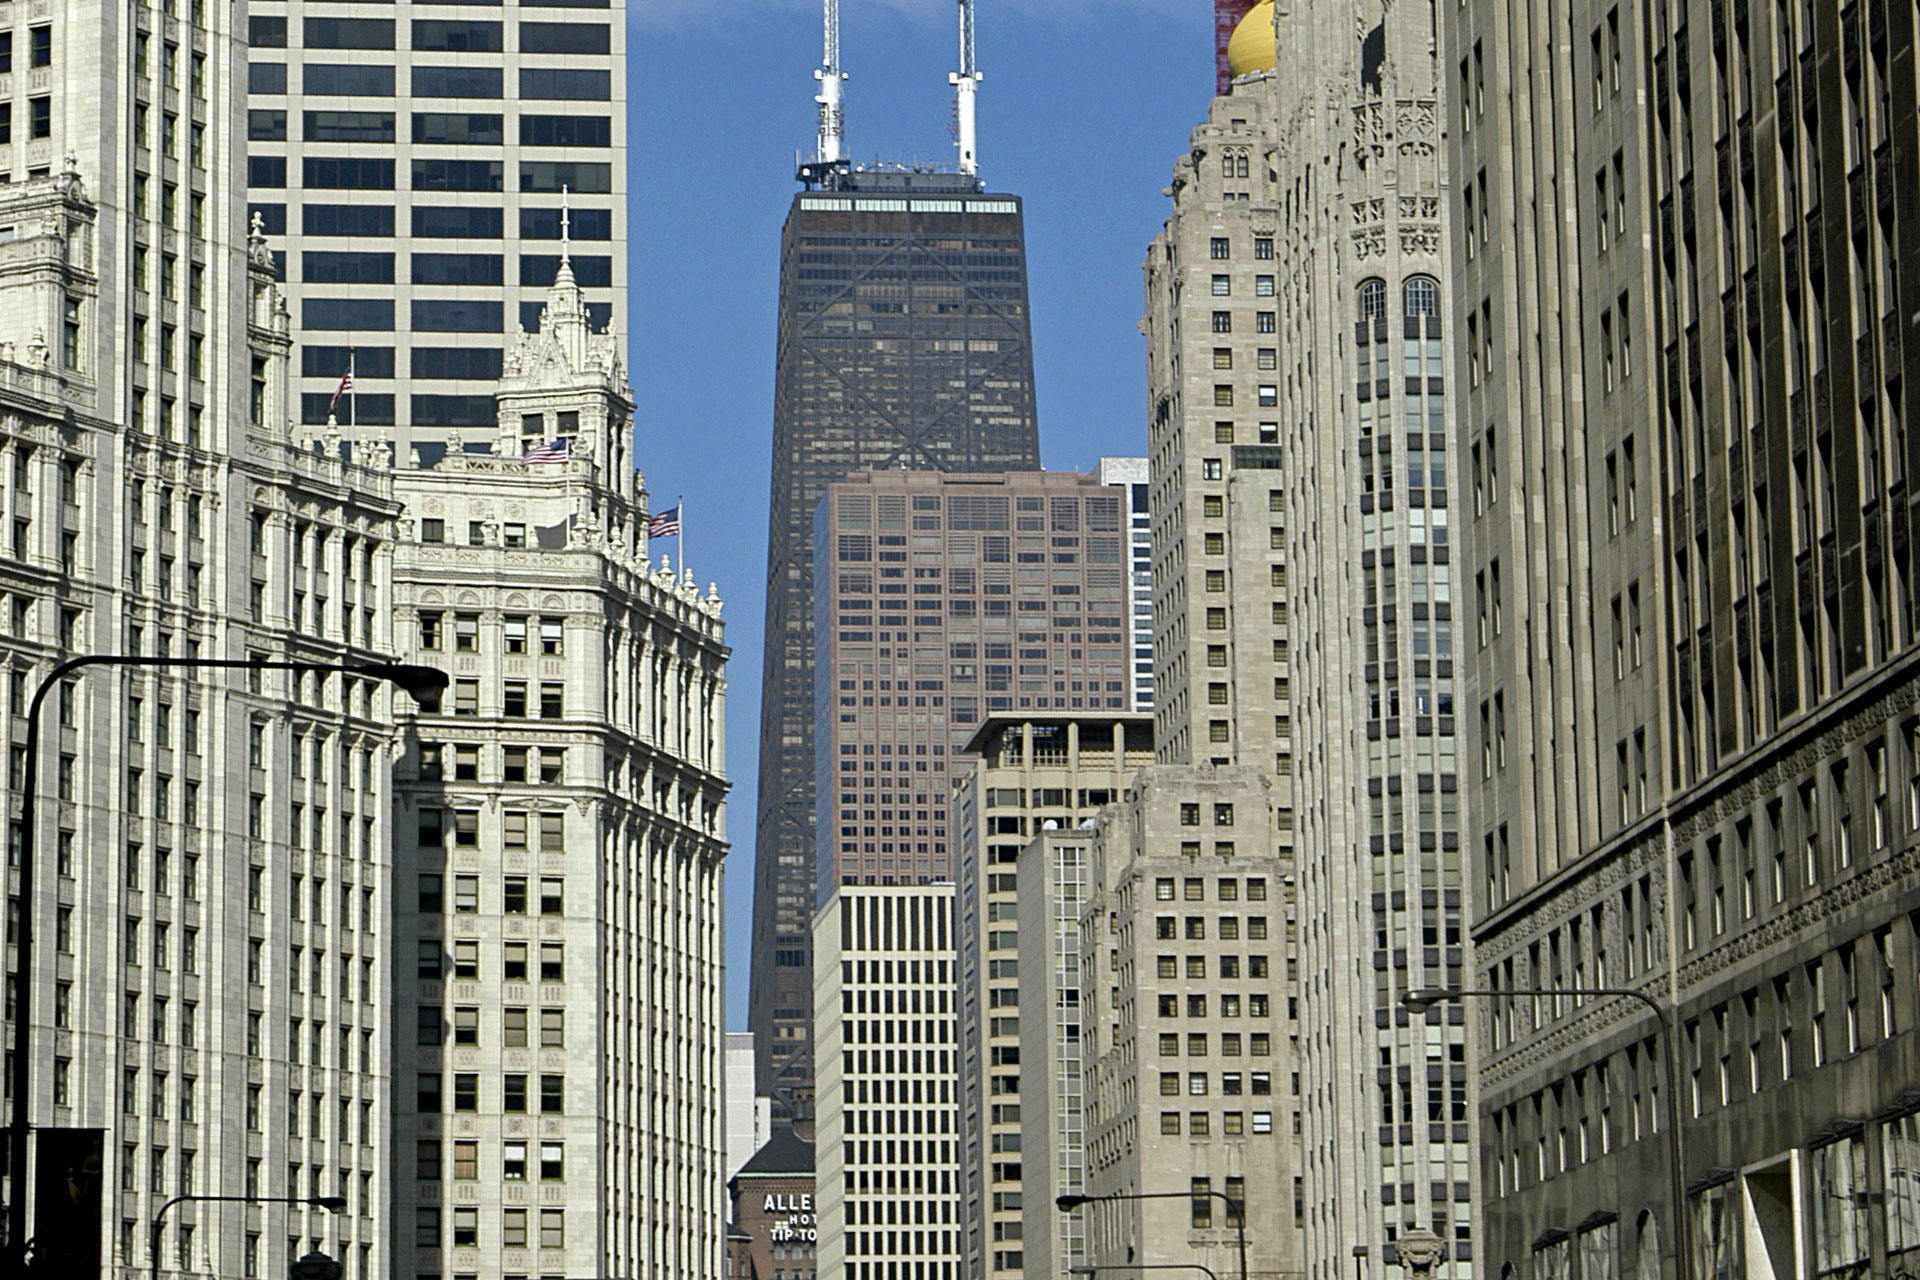 Hancock Building and Michigan Ave